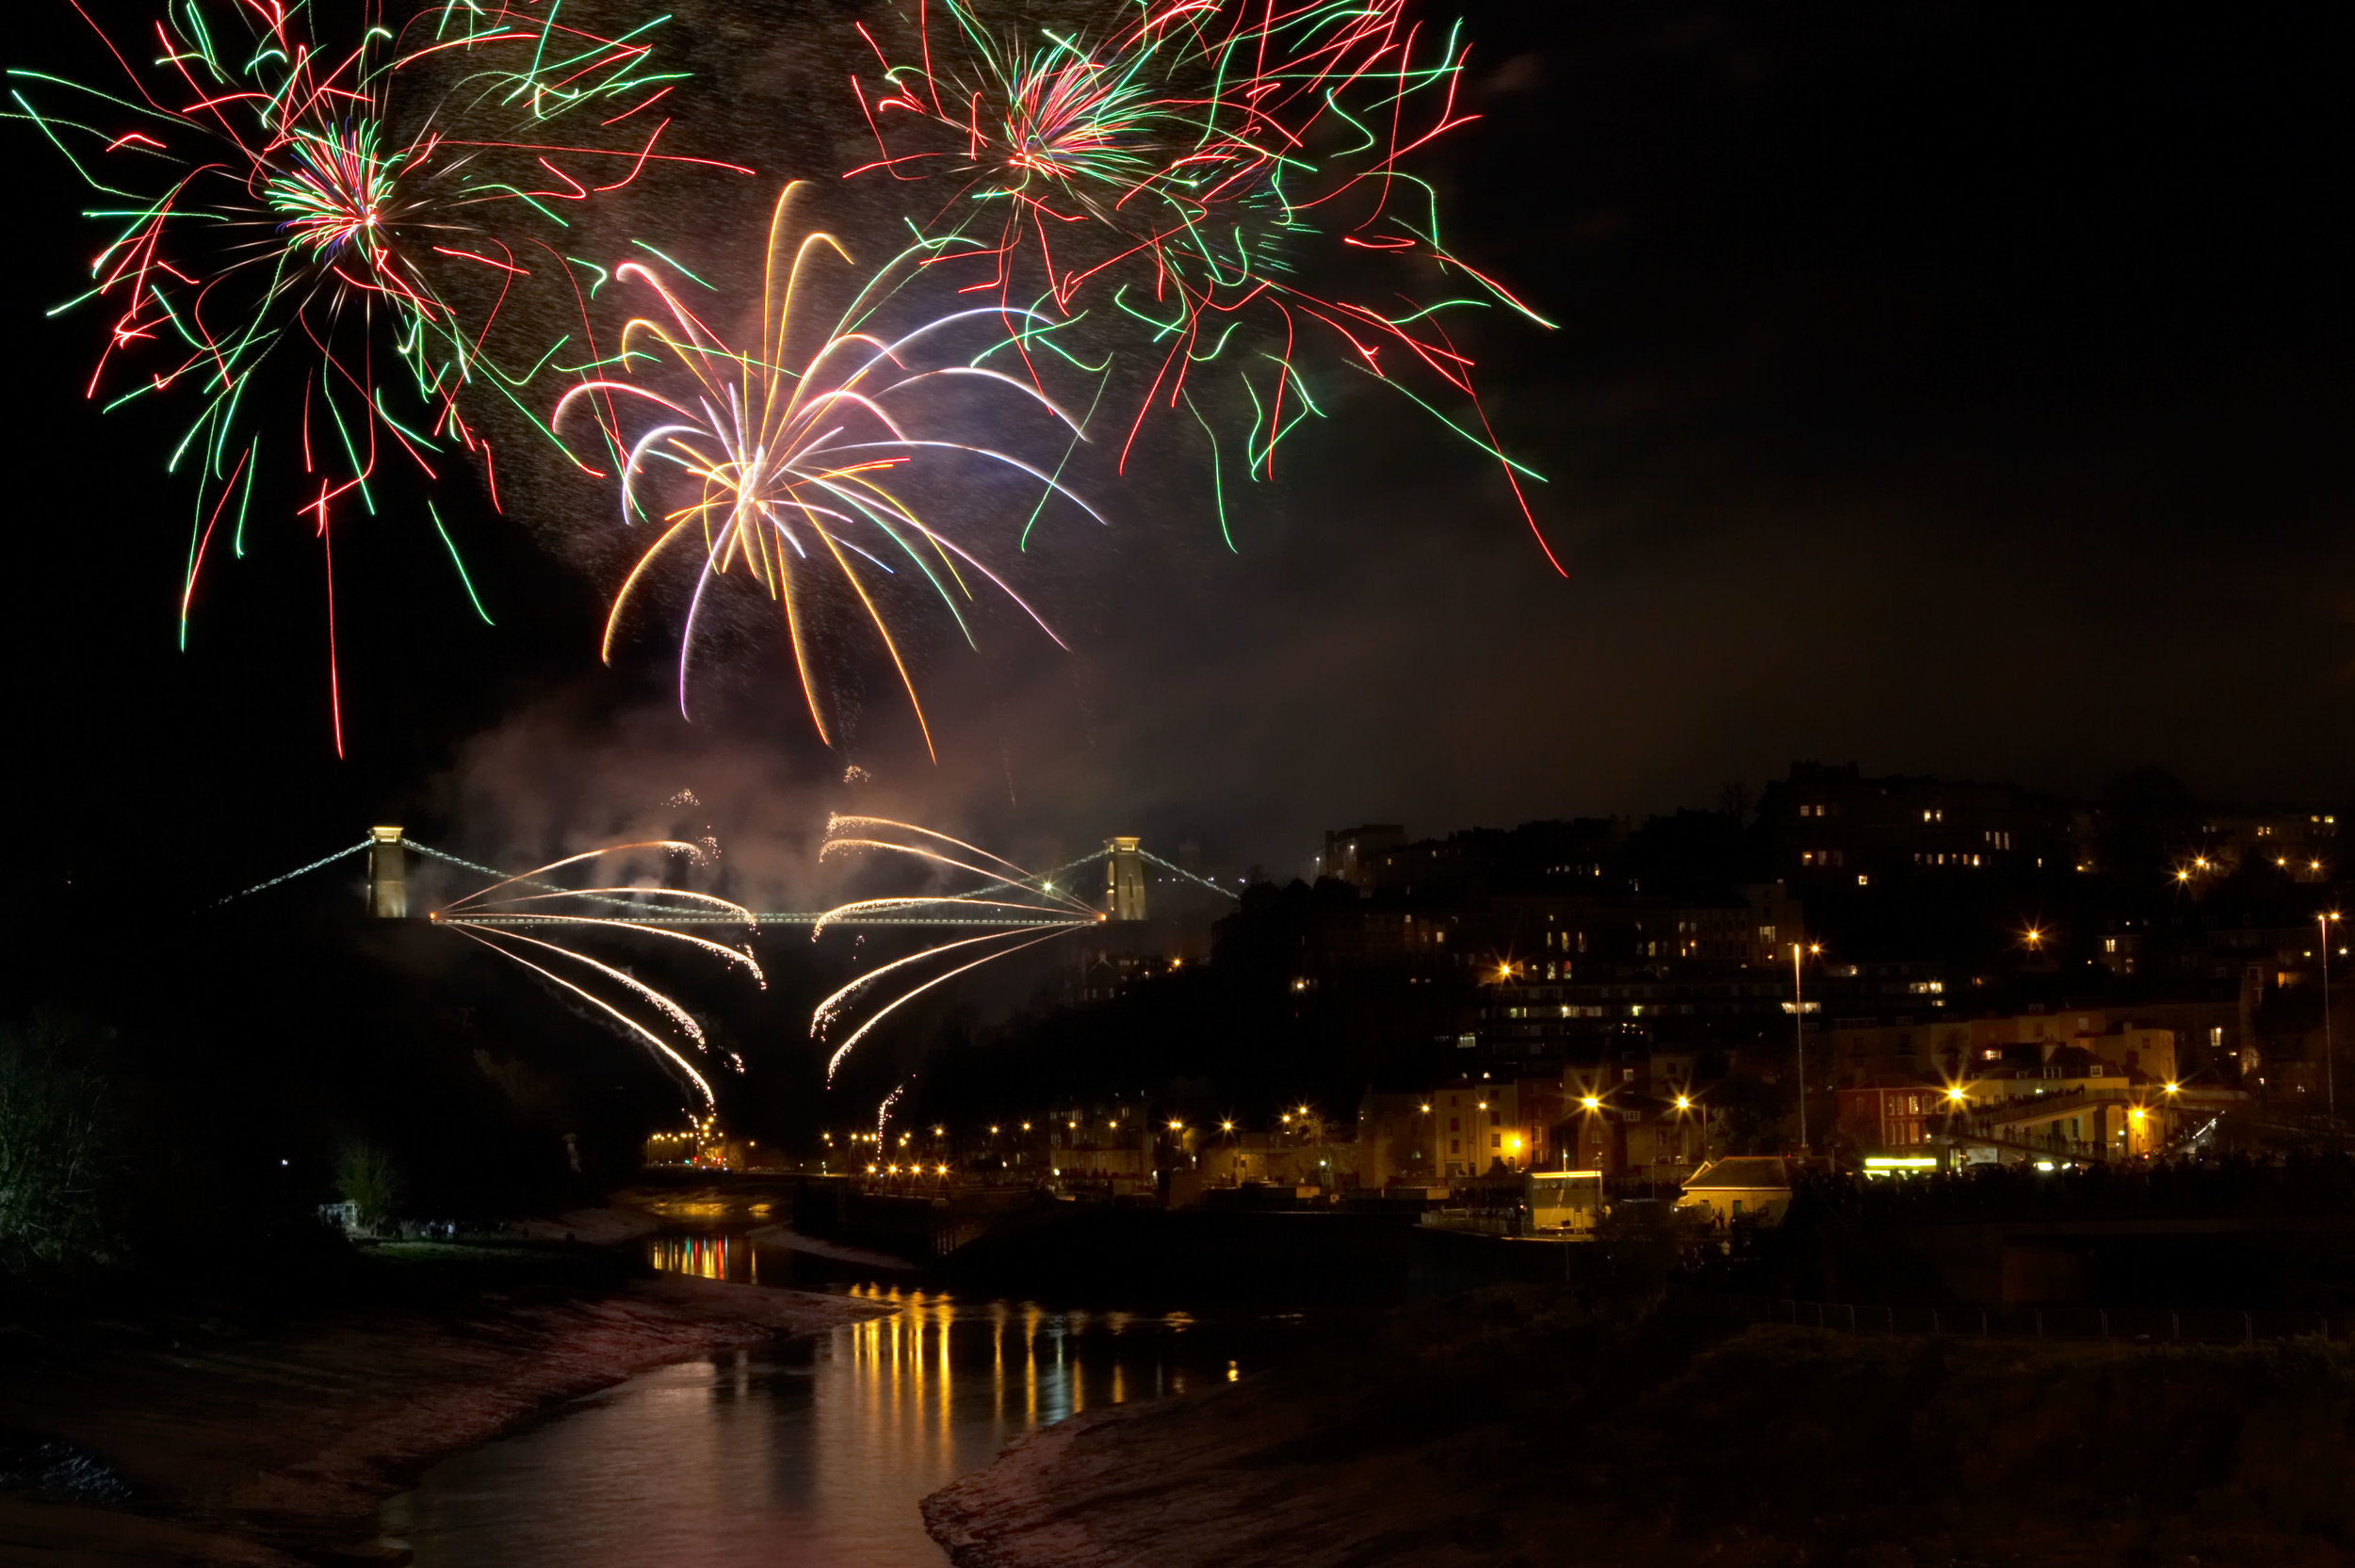 Fireworks display - Clifton suspension bridge - The Pryo Studio